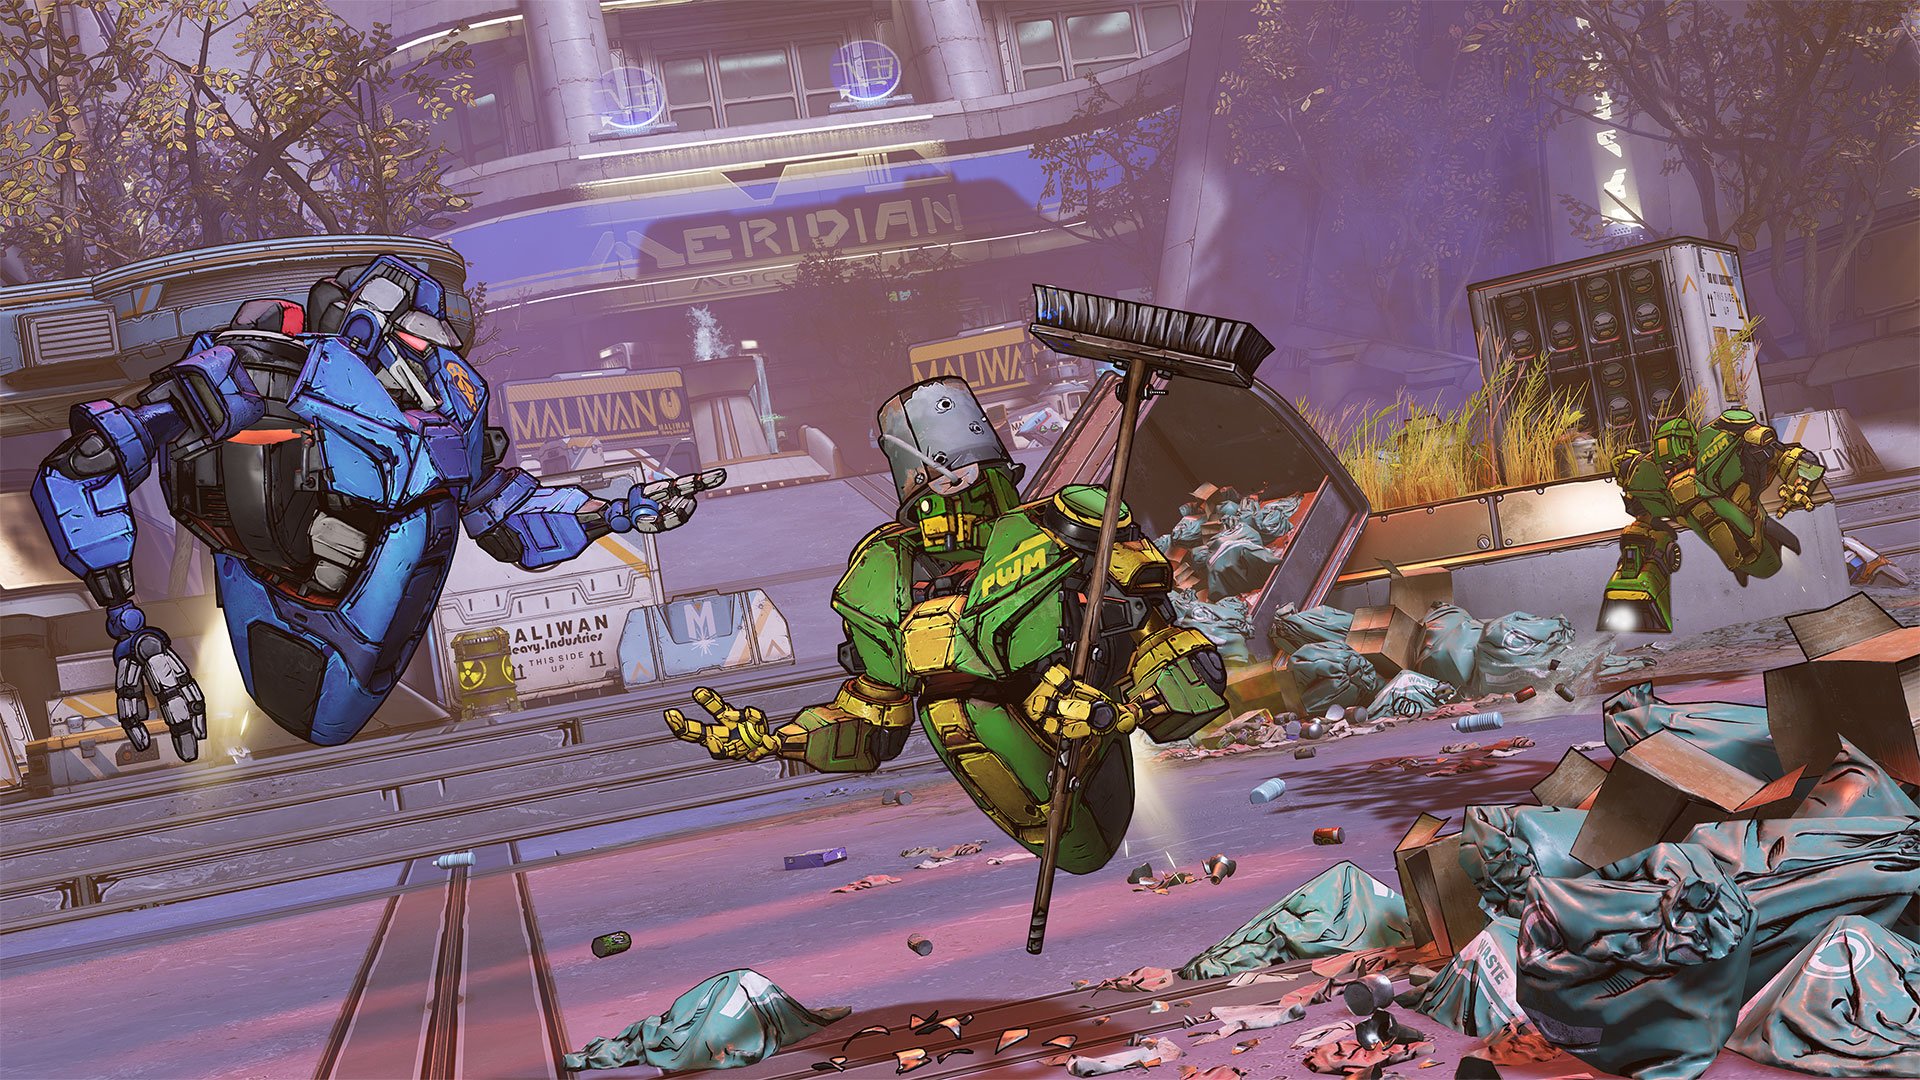 Borderlands 3 Proof Of Wife Quest Location And Tips Gamewatcher Q&a boards community contribute games what's new. borderlands 3 proof of wife quest